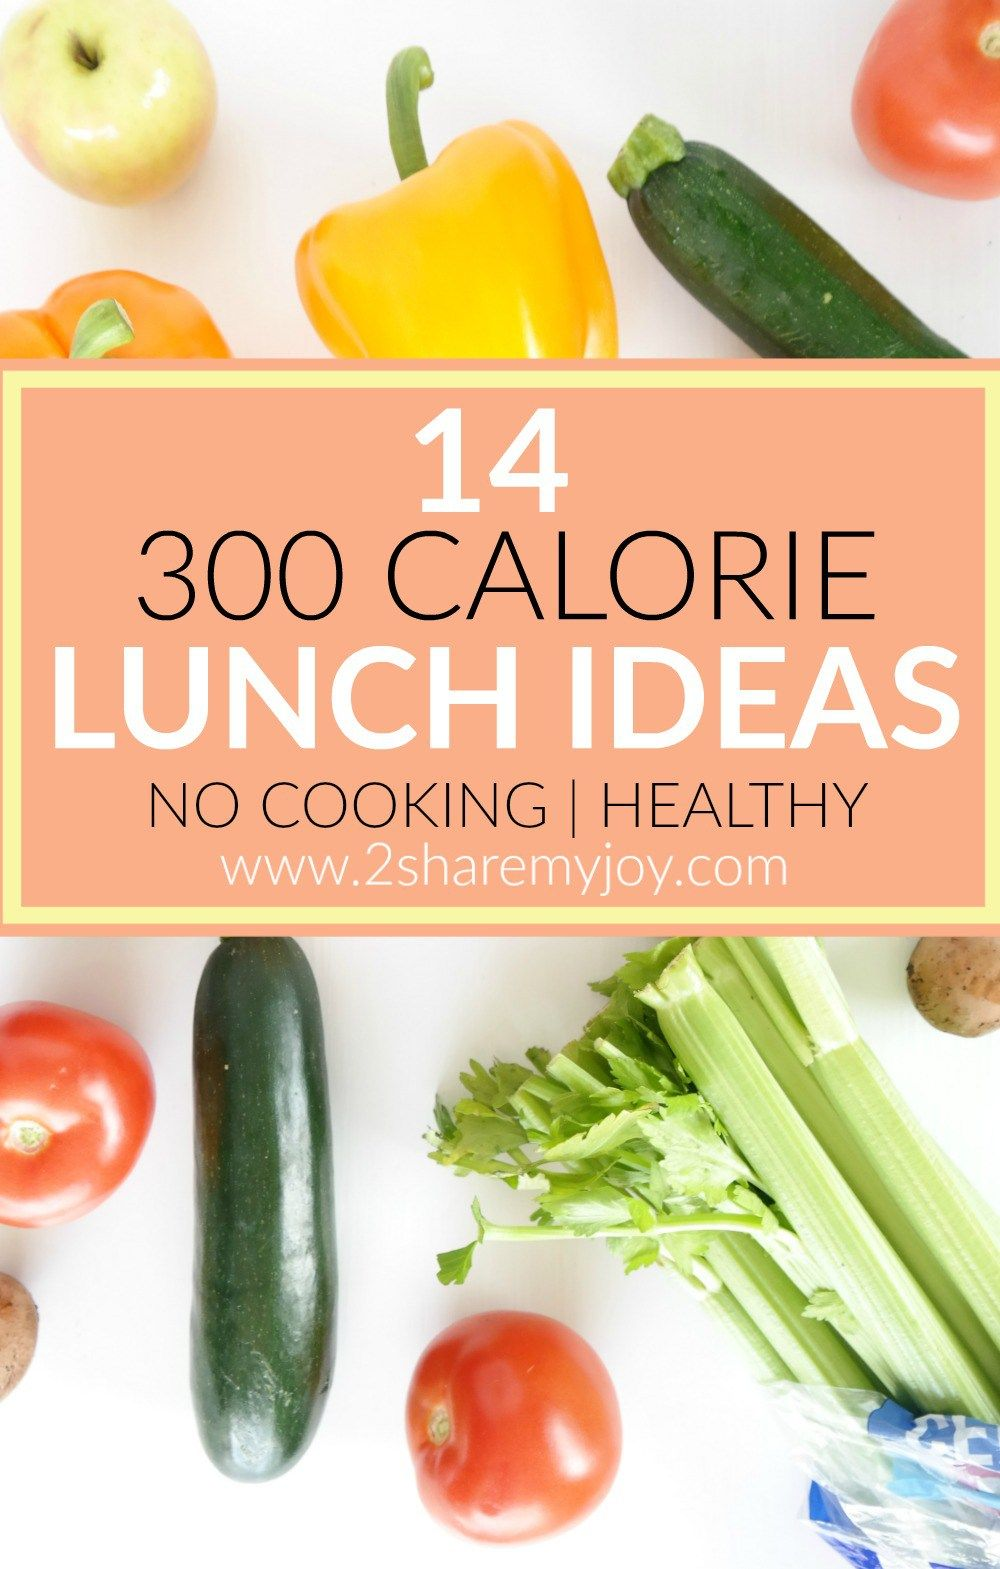 60 Vegan No Cook Lunches For On The Go 300 Calorie Lunches Workout Food 300 Calorie Meals